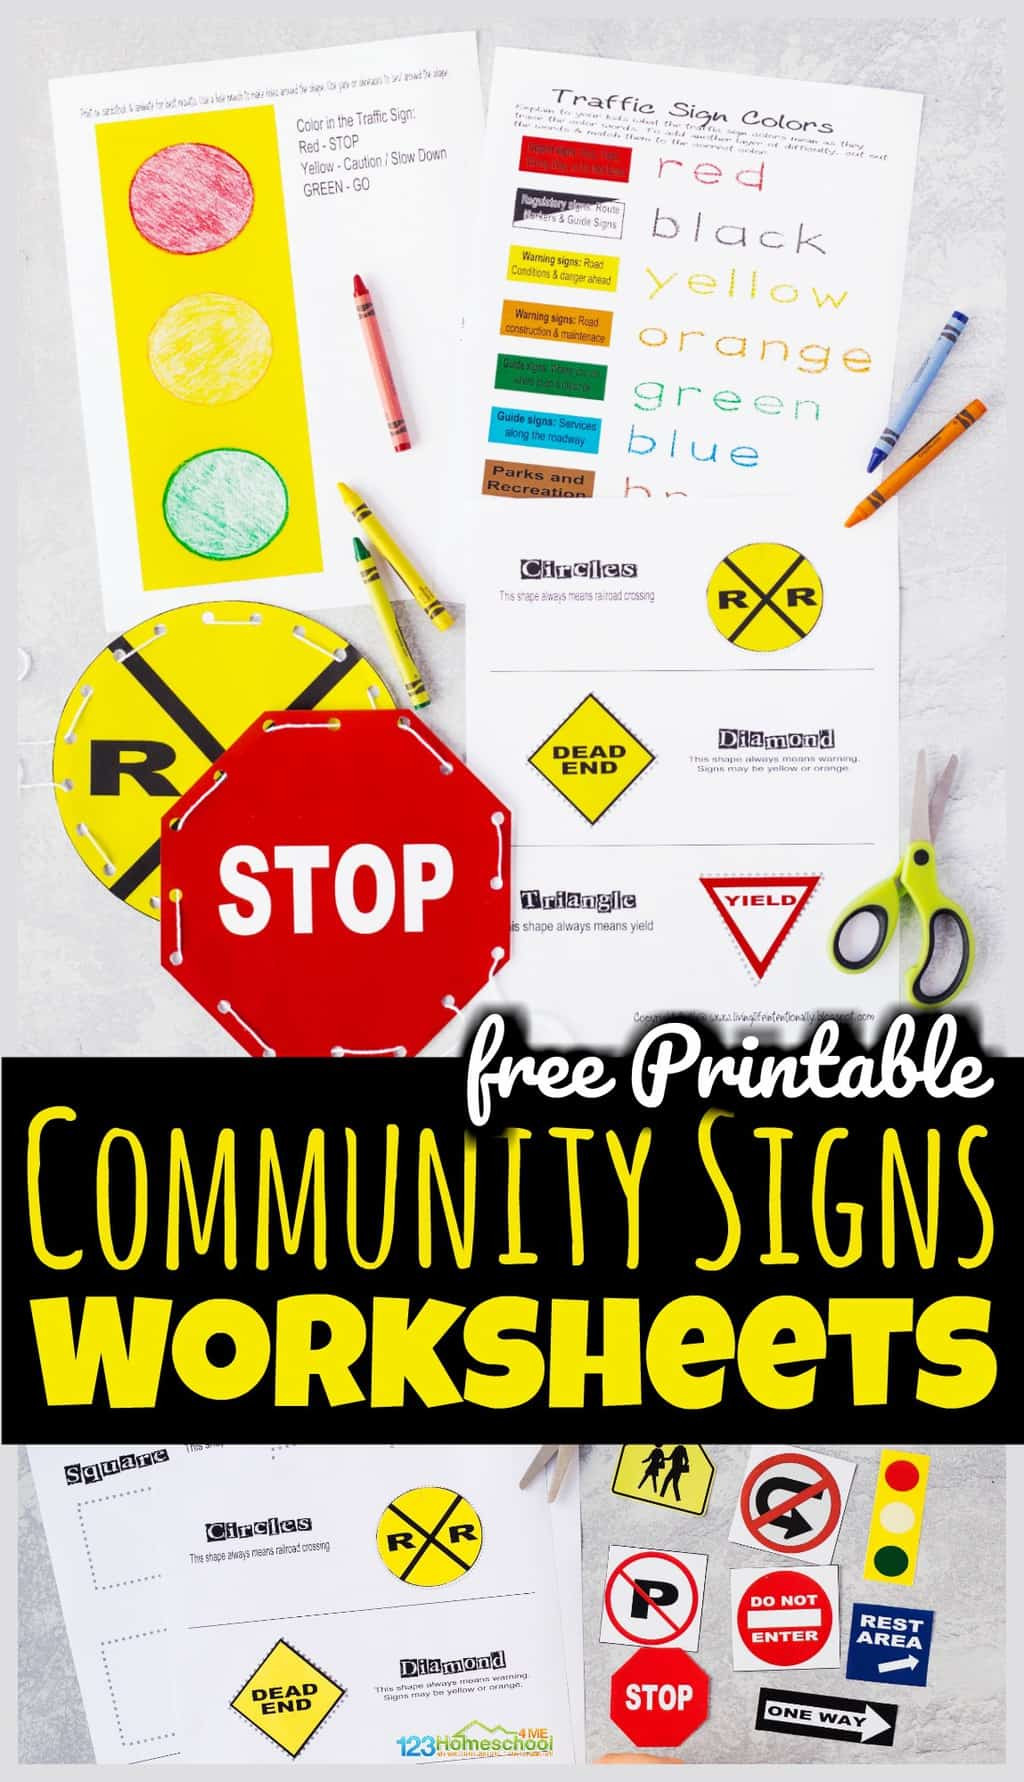 Free Printable Safety Signs Worksheets Free Printable Munity Signs Worksheets